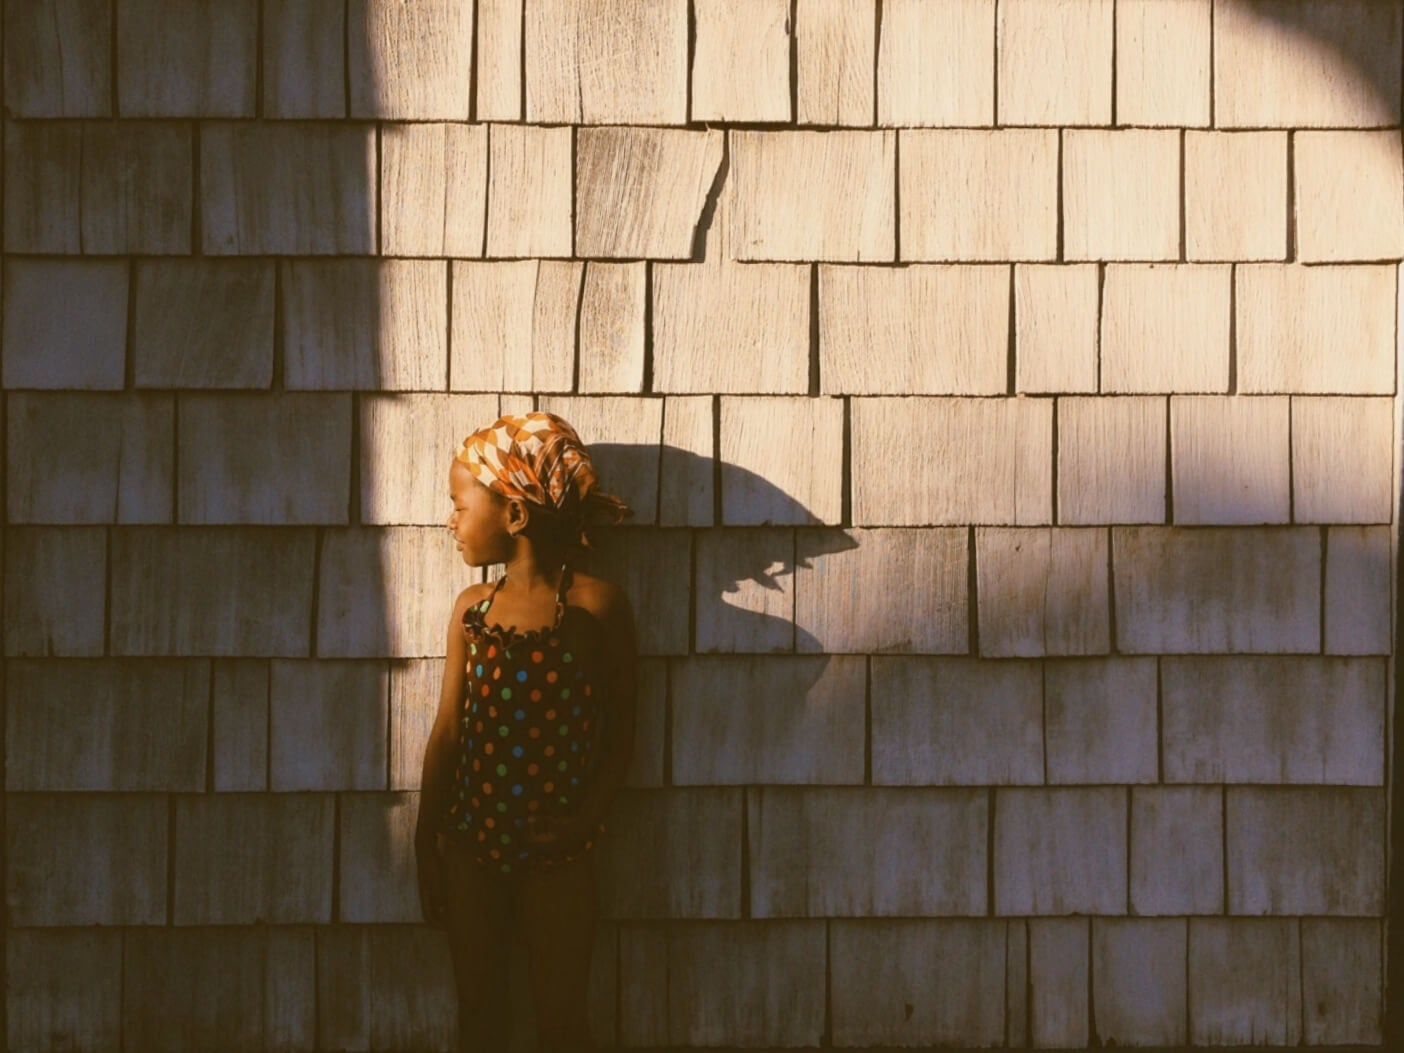 photo of child against textured wall